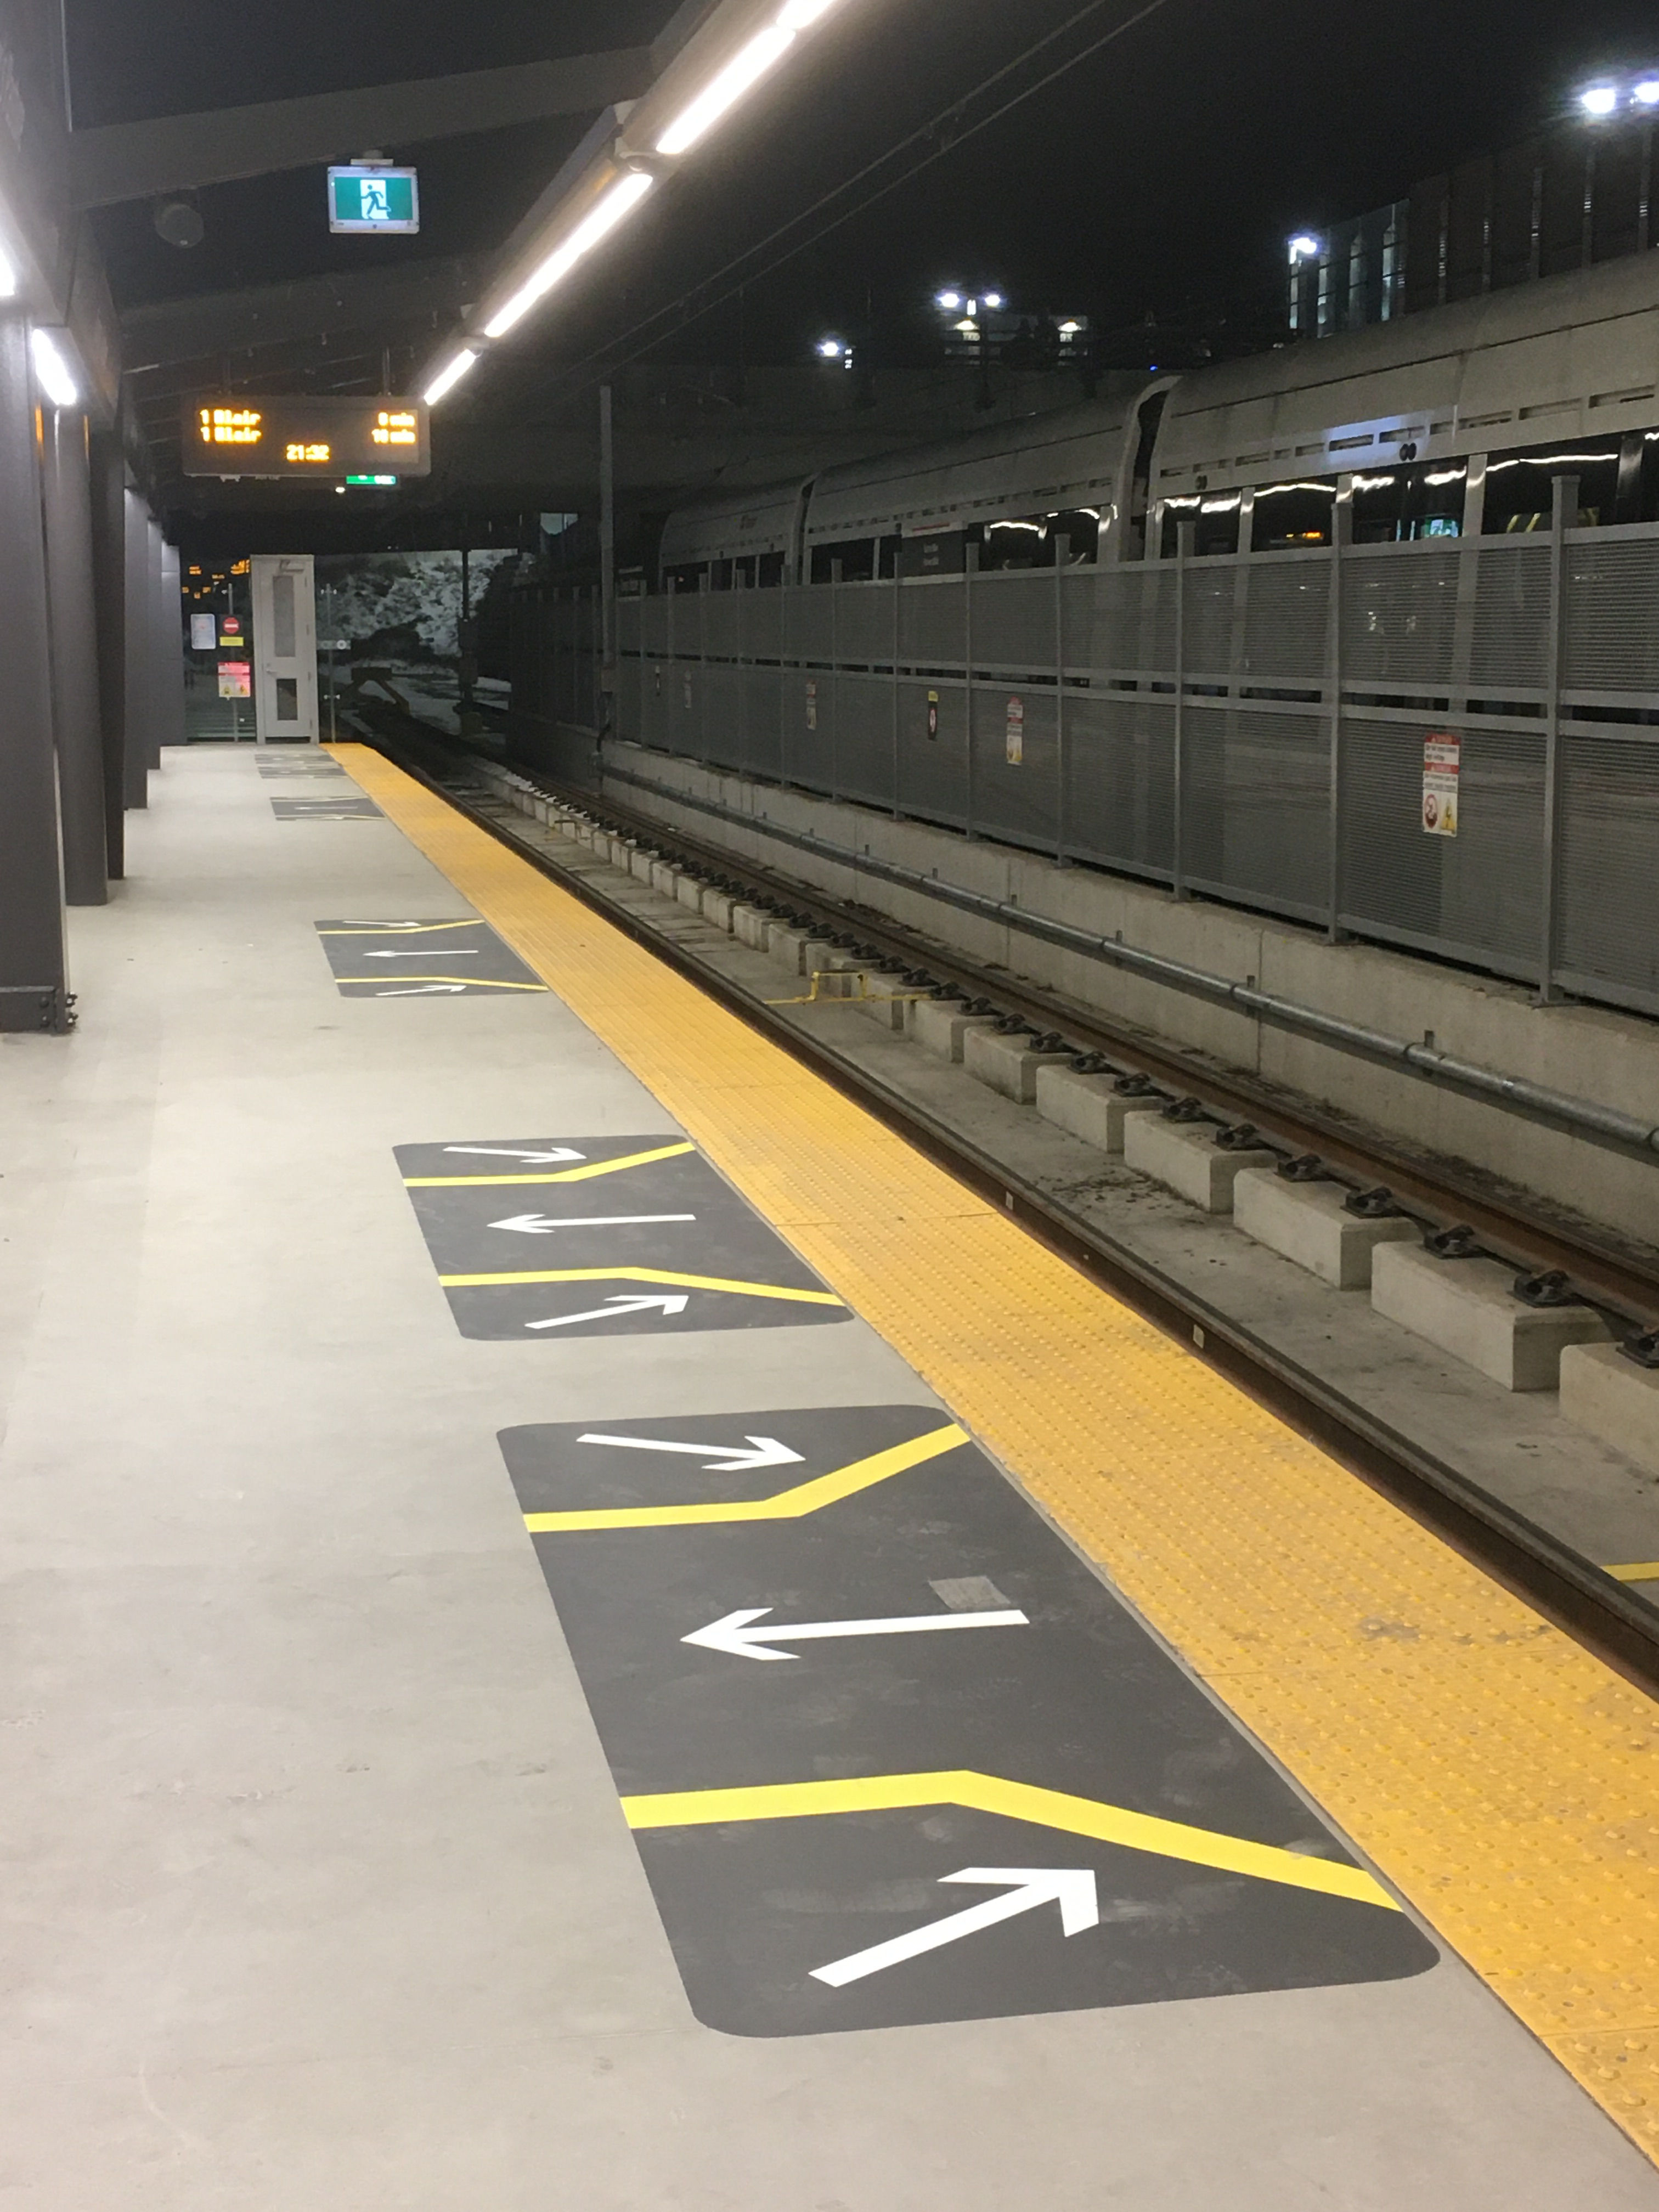 Image 2 of floor decals at Tunney's Pasture station